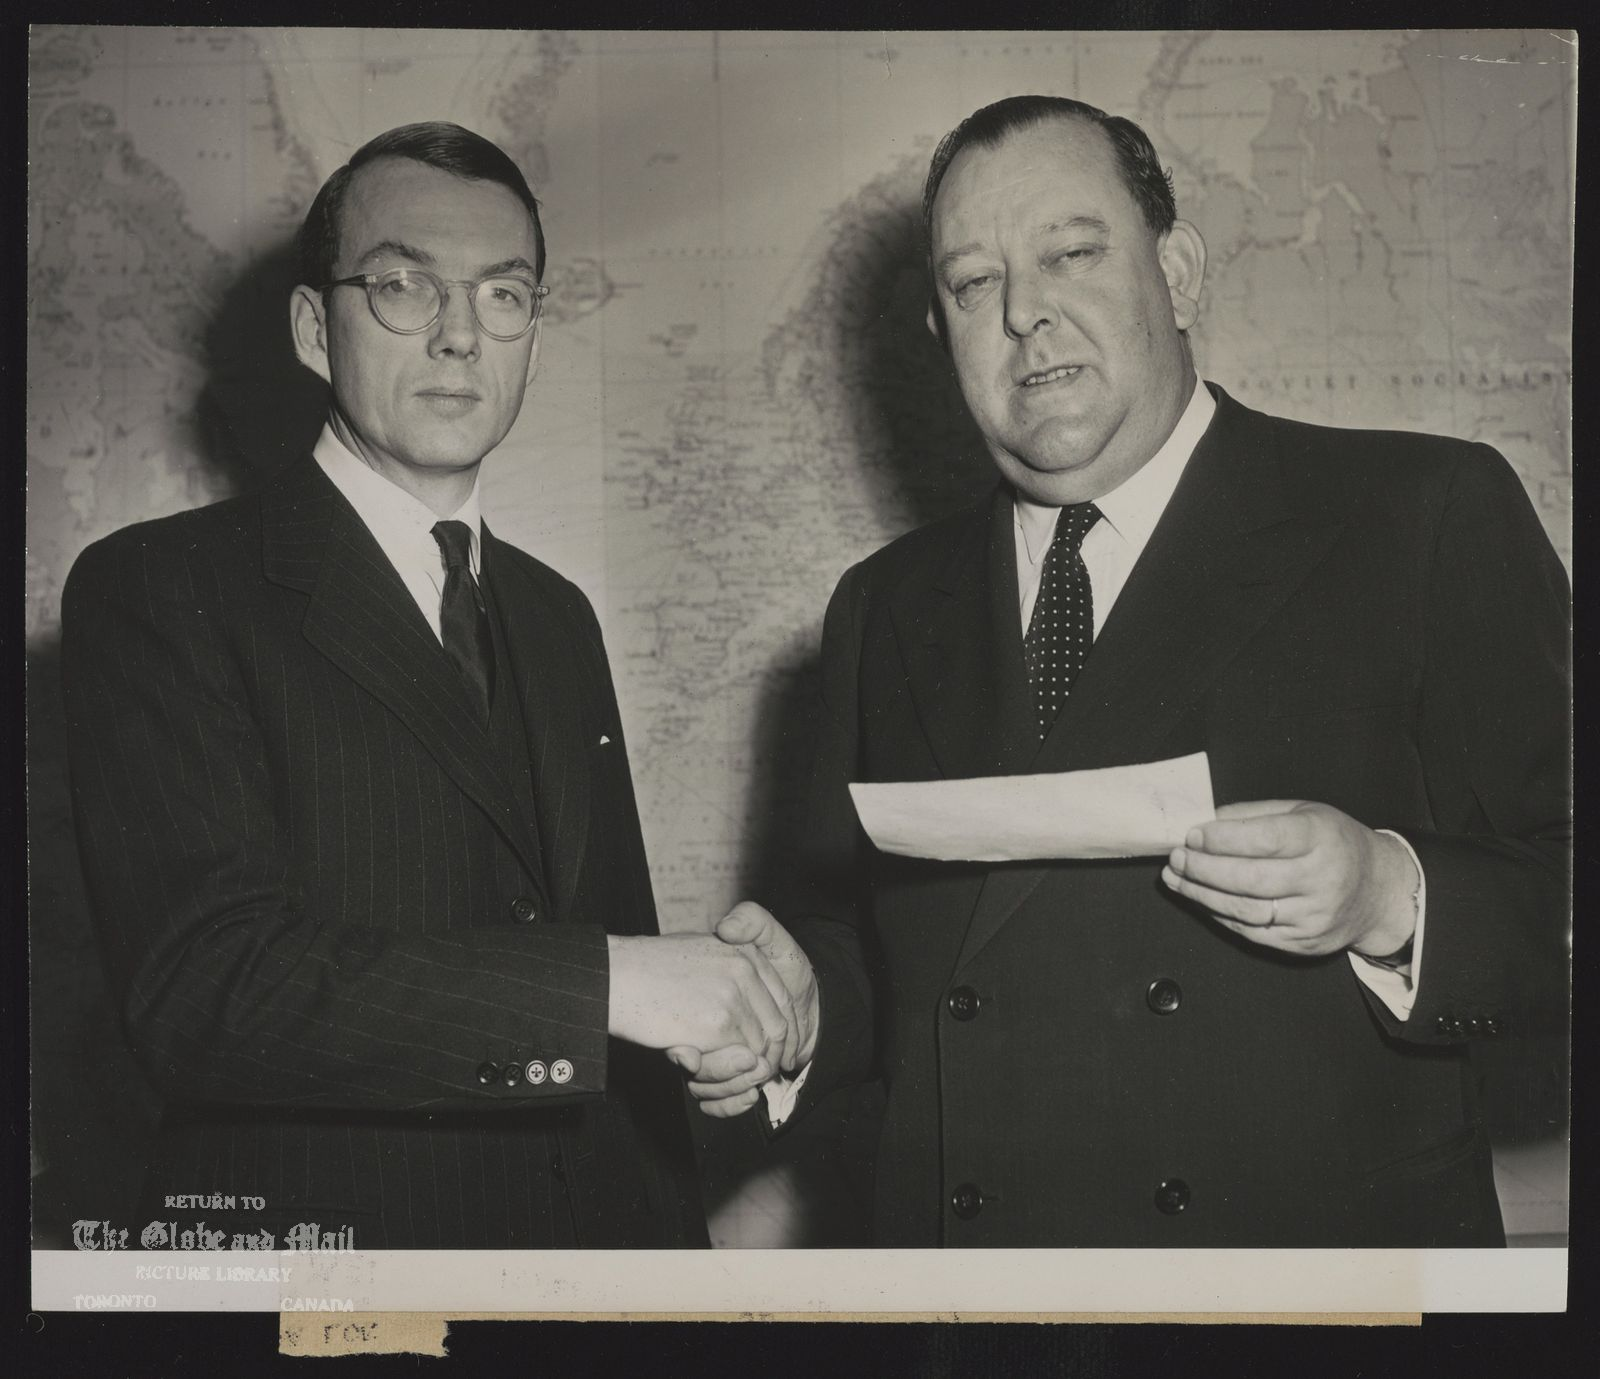 CANADIAN CHECK FOR U.N. RELIEF. JOHN W. HOLMES, UNITED NATIONS DELEGATE FOR CANADA, PRESENTS A CHECK FOR EIGHT MILLION DOLLARS TO U.N. SECRETARY GENERAL TRYGVE L E (RIGHT), FOR THE U.N. RELIEF FUND. SEVEN AND A QUARTER MILLIONS ARE FOR KOREAN RELIEF AND REHABILITATION AND THREE QUARTERS OF A MILLION DOLLARS FOR ISRAEL RELIEF. THE PRESENTATION, APRIL 5, IS BEING MADE IN L E'S OFFICE AT U.N. HEADQUARTERS, NEW YORK CITY. 4/5/51 [1951]